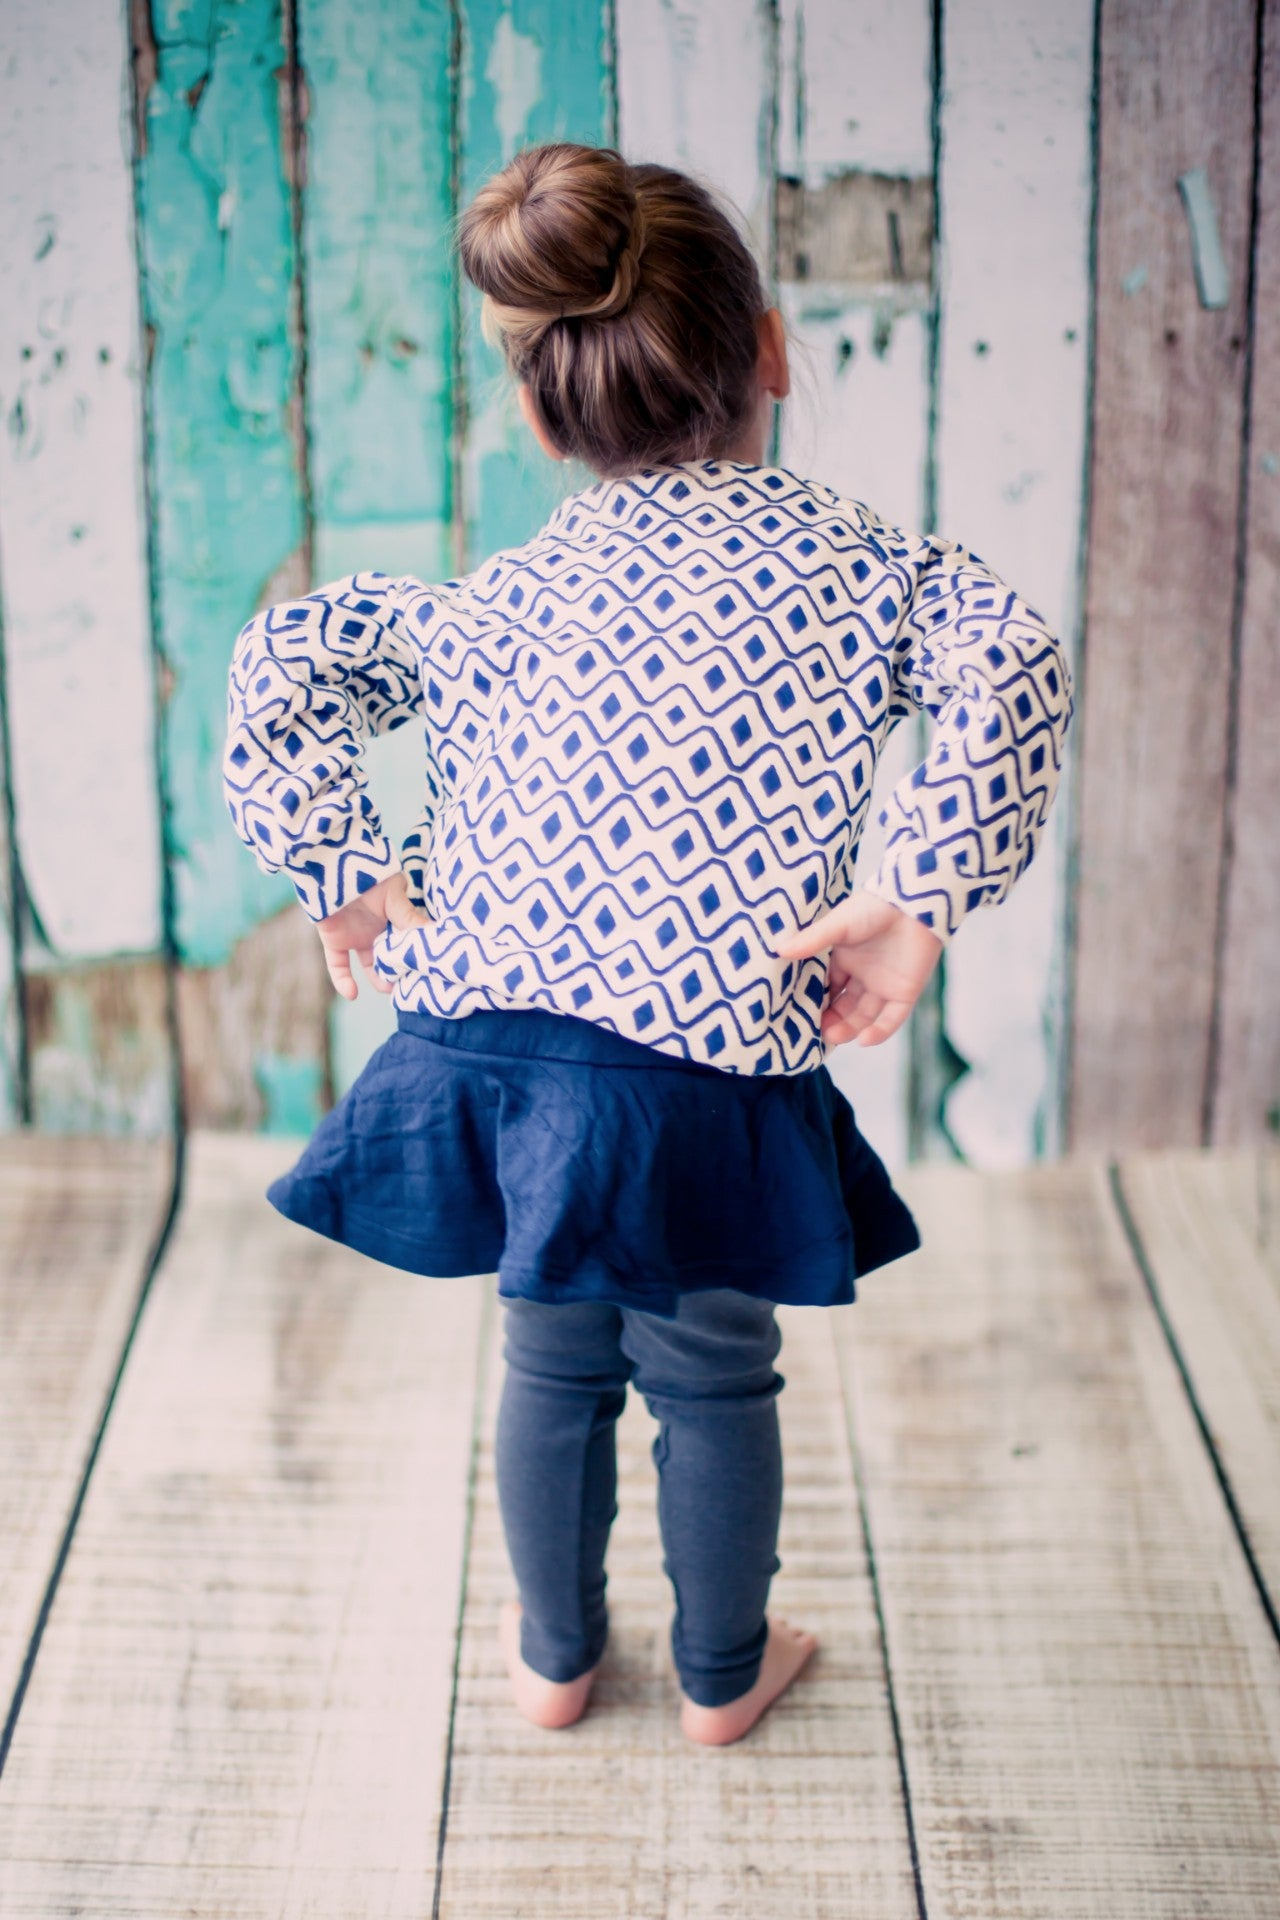 Urban Wear - Little Miss Blue Jay (Sizes 2-4)